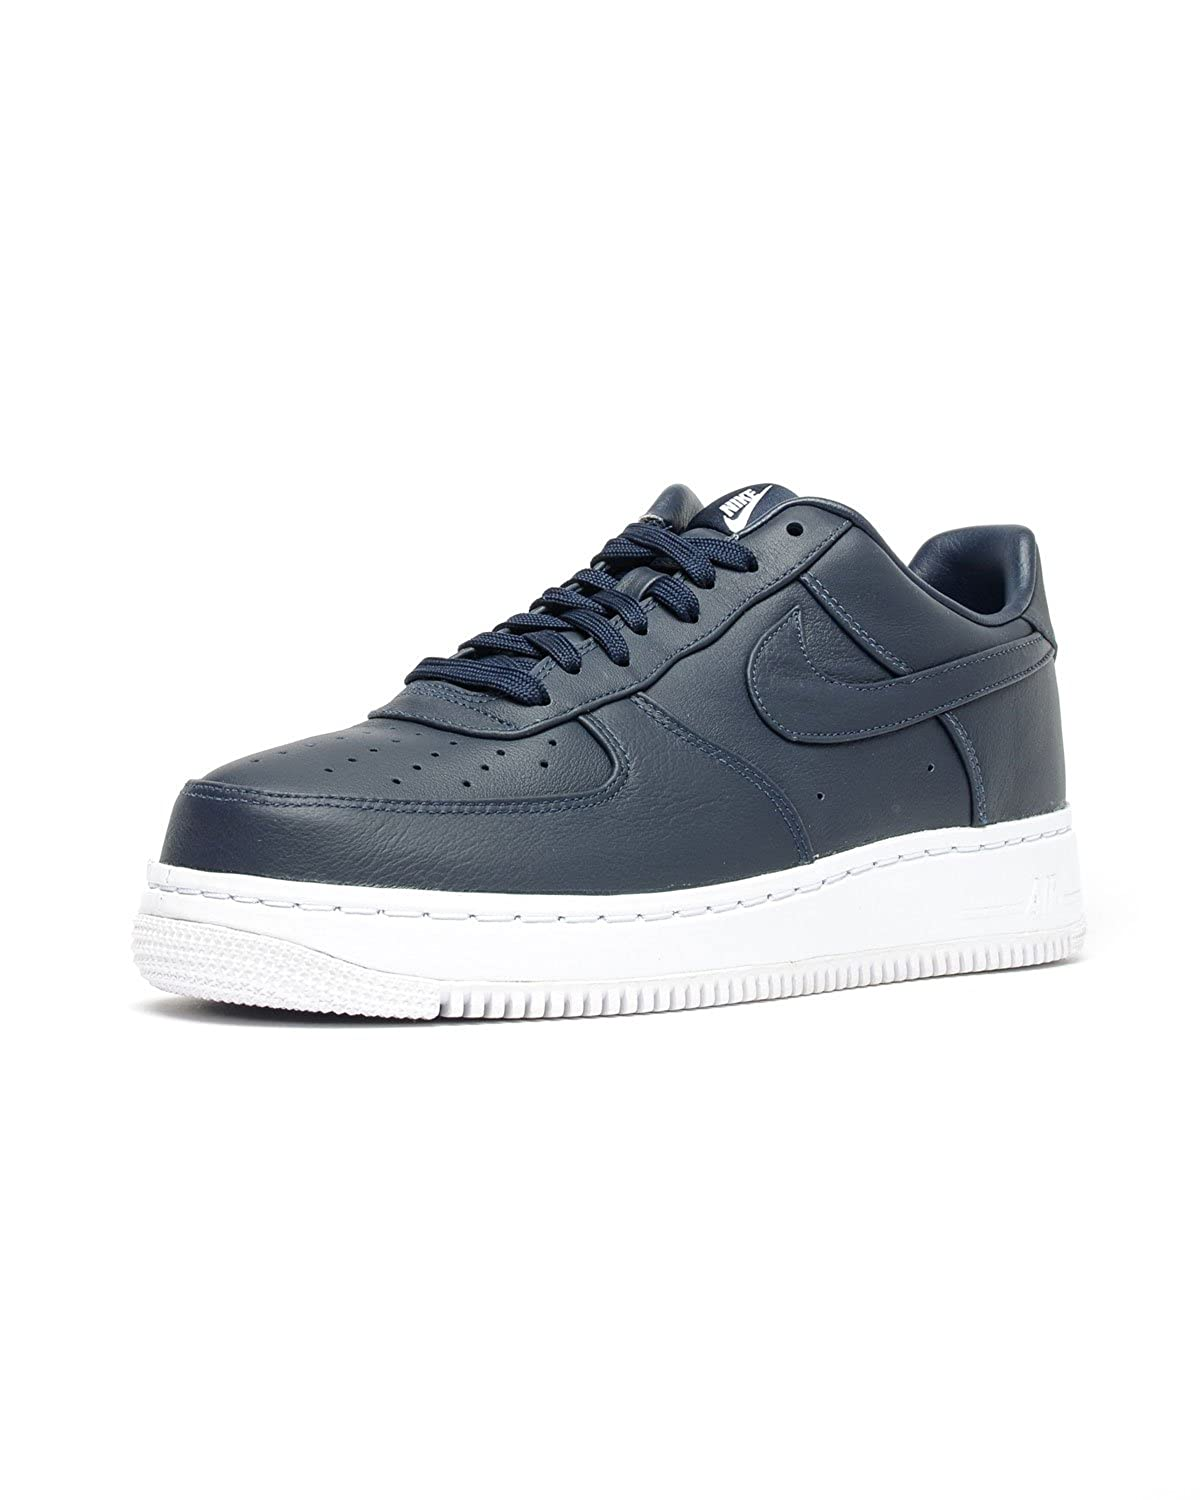 New Air Force One Nike Low 07 Suede ObsidianWhite Men's